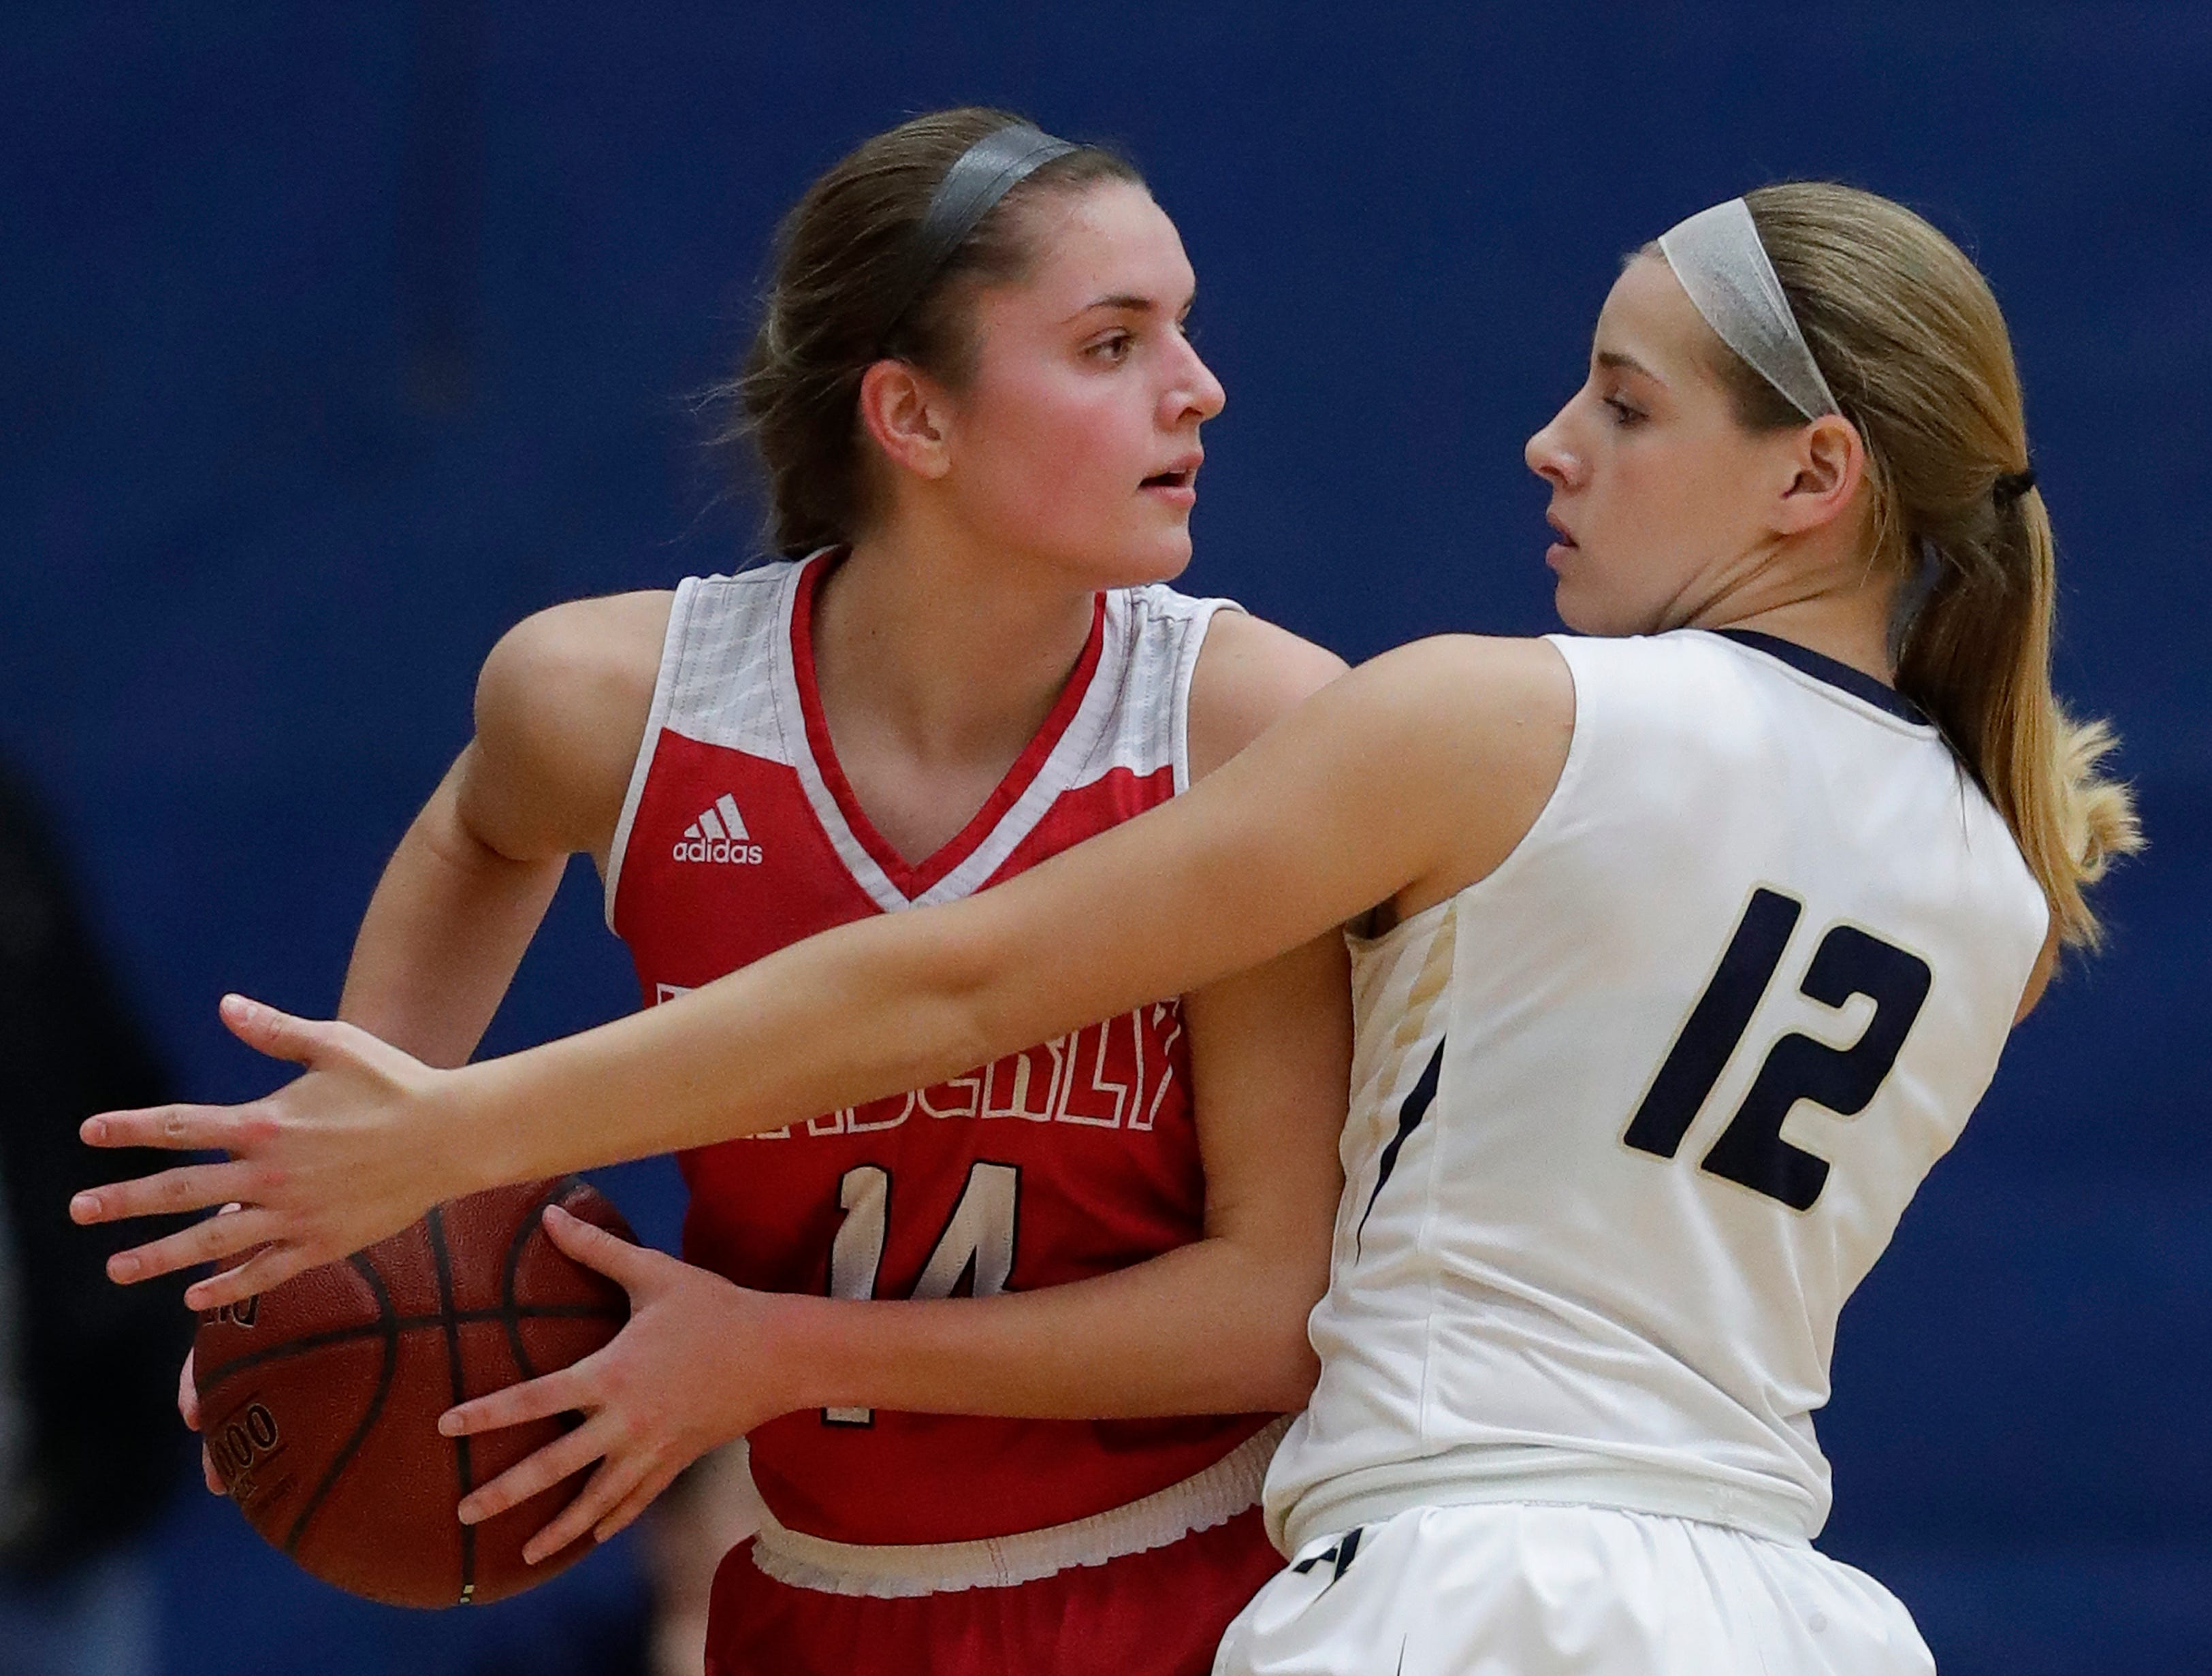 Appleton North High School's Teagan Prusinski (12) defends against Kimberly High School's Taylor Hietpas (14) during their girls basketball game Tuesday, January 8, 2019, in Appleton, Wis. Dan Powers/USA TODAY NETWORK-Wisconsin